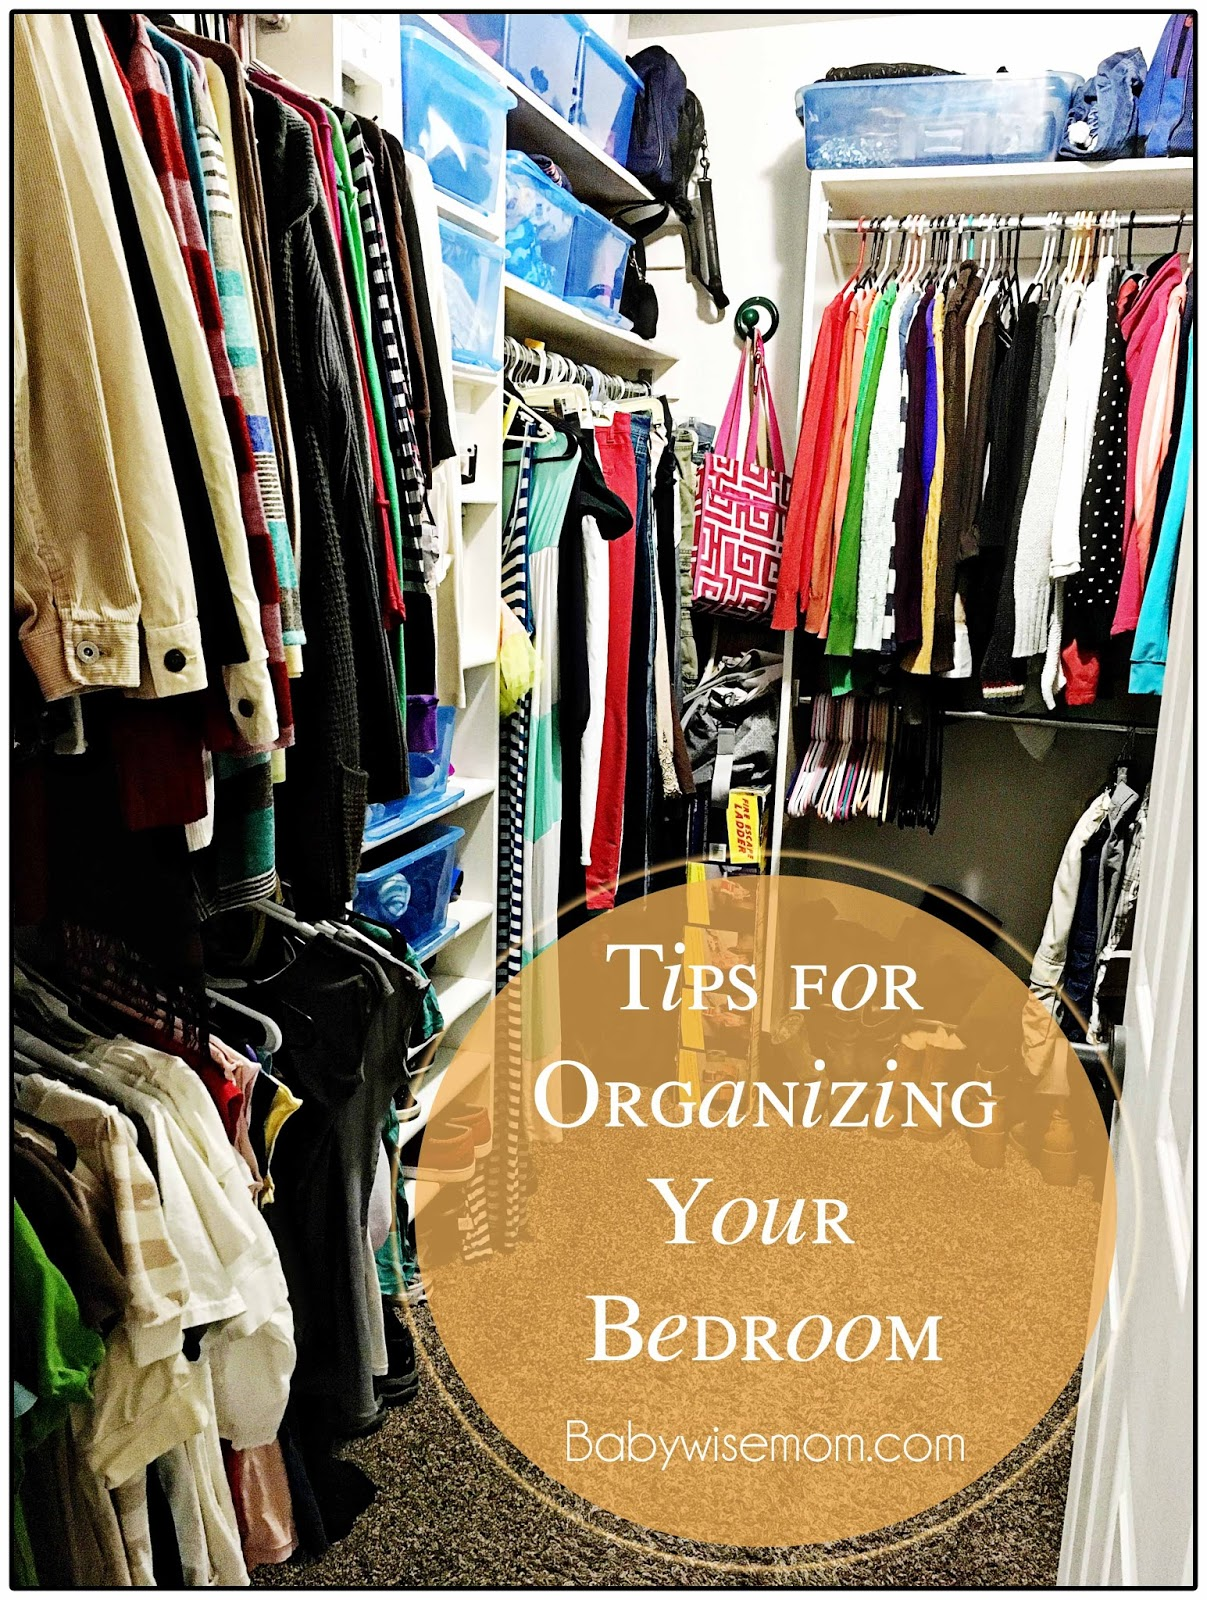 Tips for organizing your bedroom chronicles of a babywise mom for 5 tips to organize your bedroom